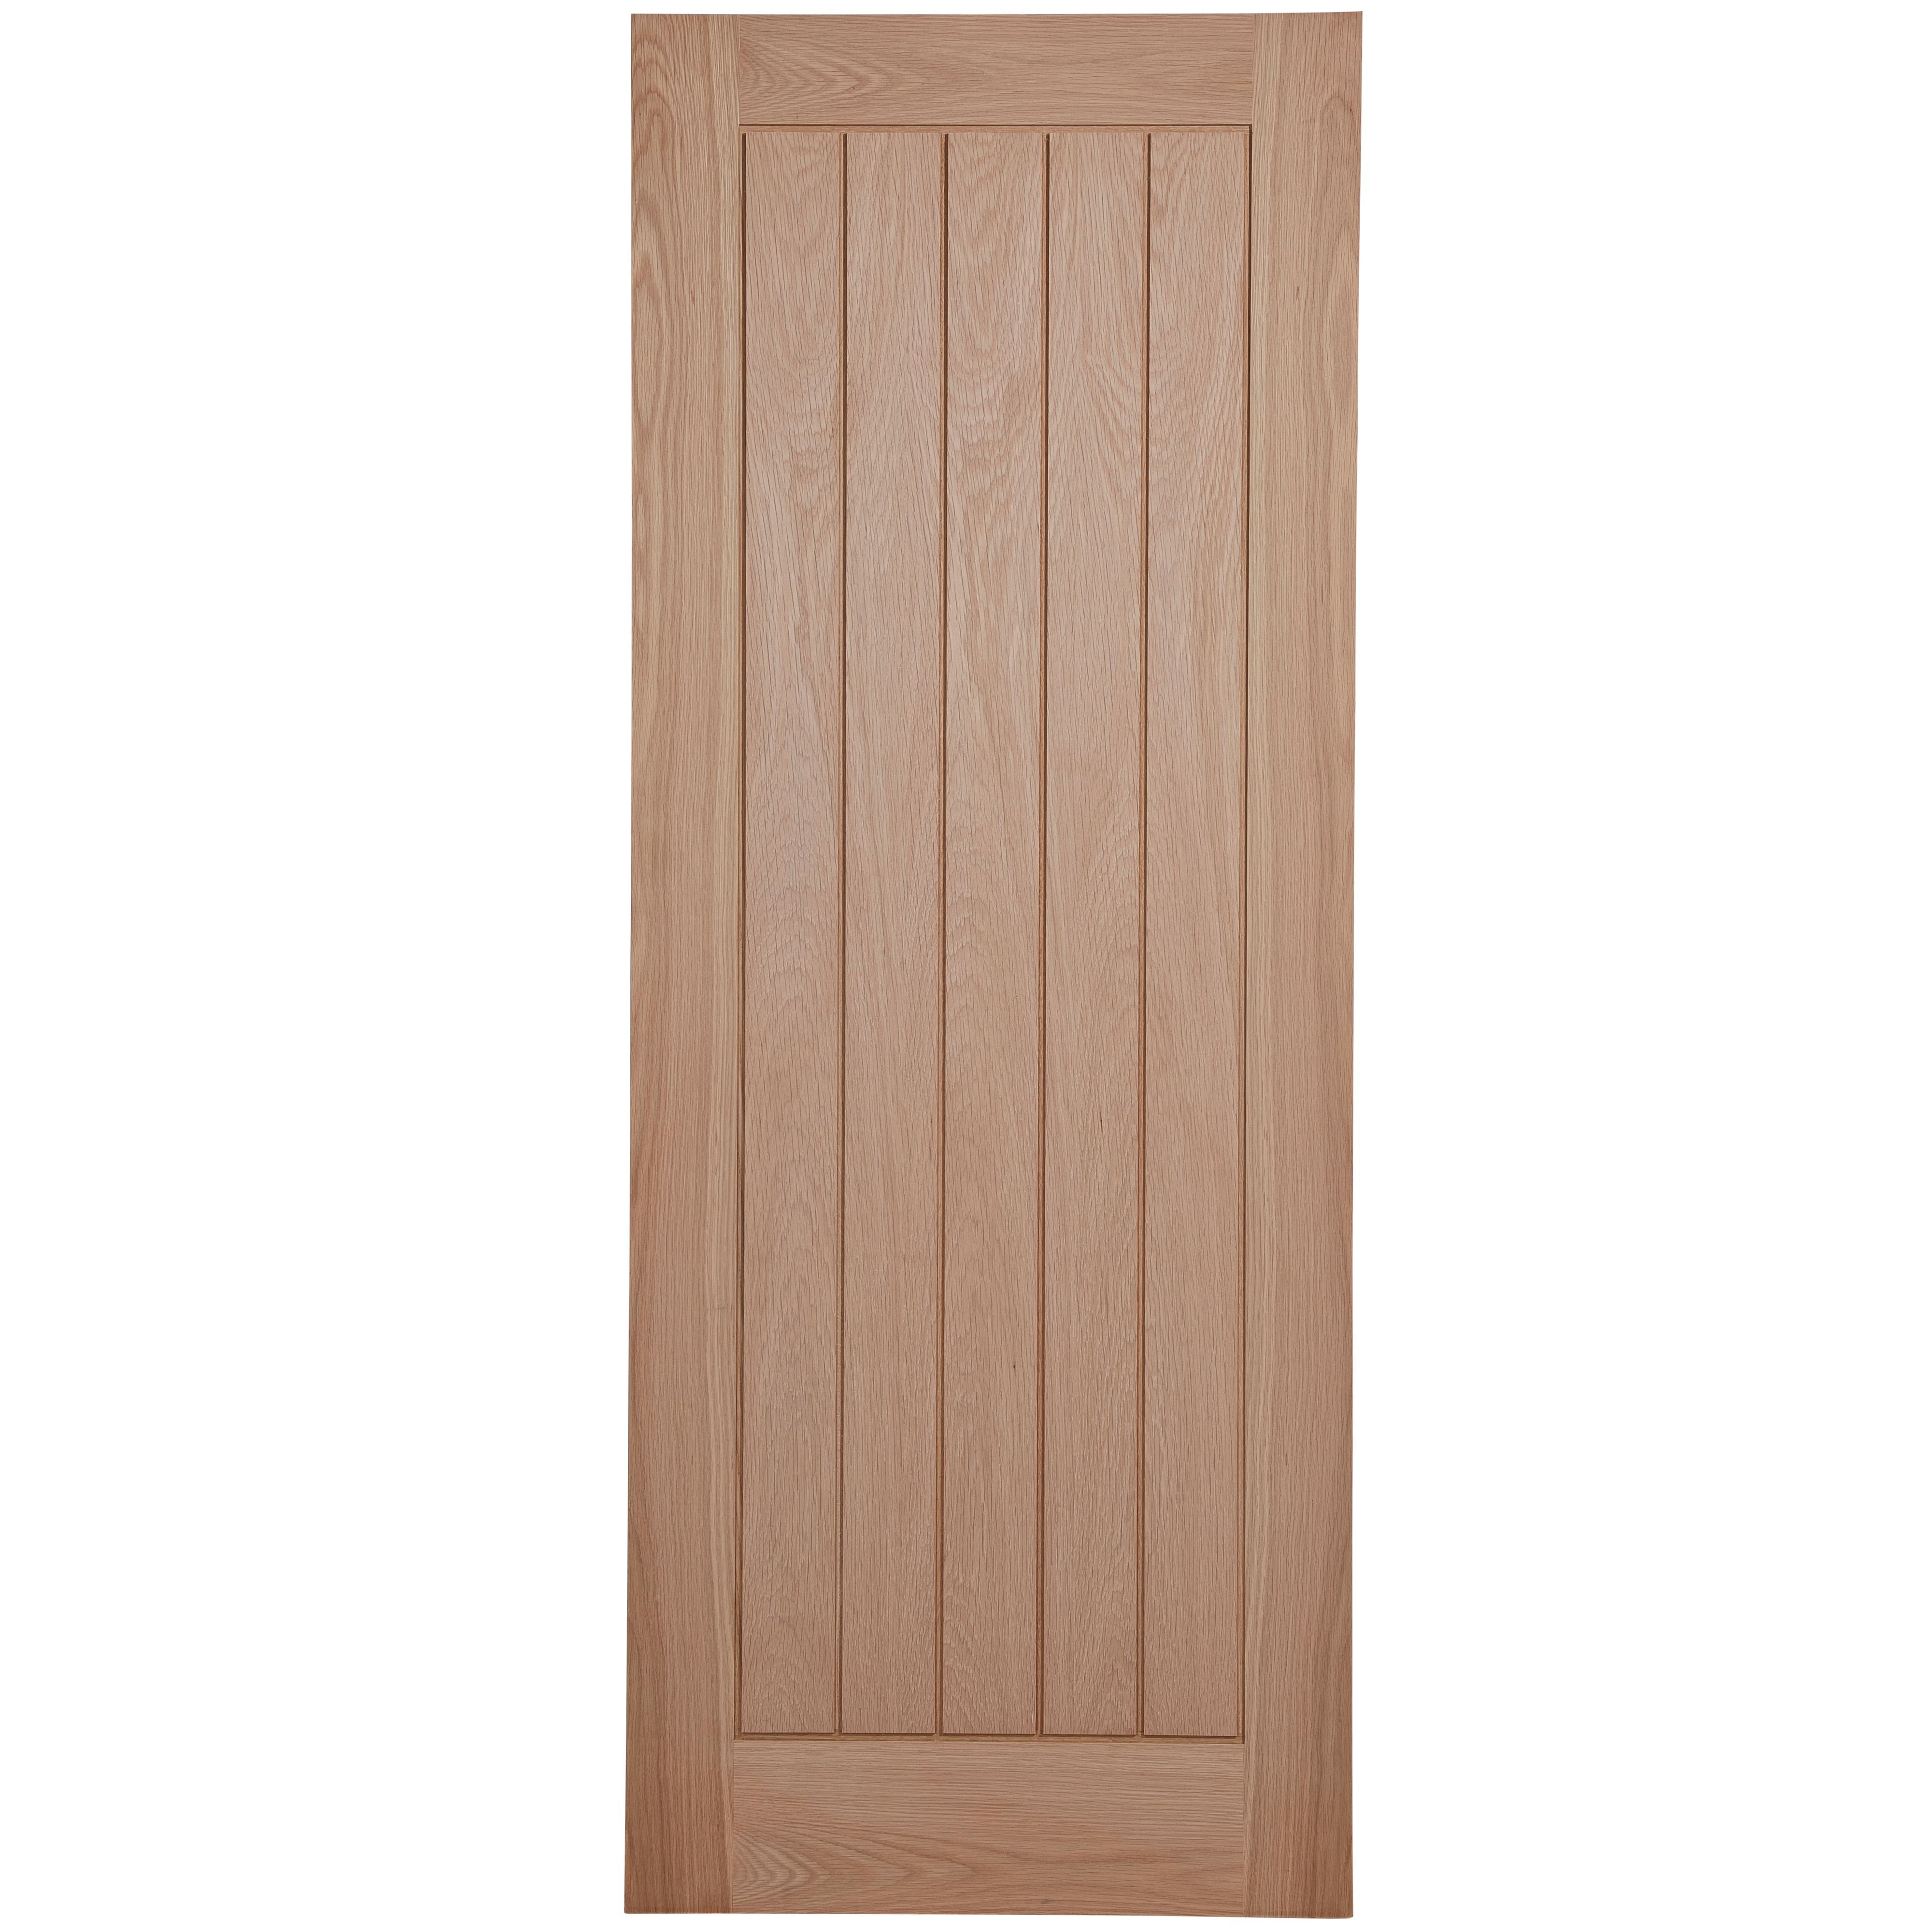 Cottage Panel Oak Veneer Unglazed Internal Standard Door, (h)1981mm (w)762mm